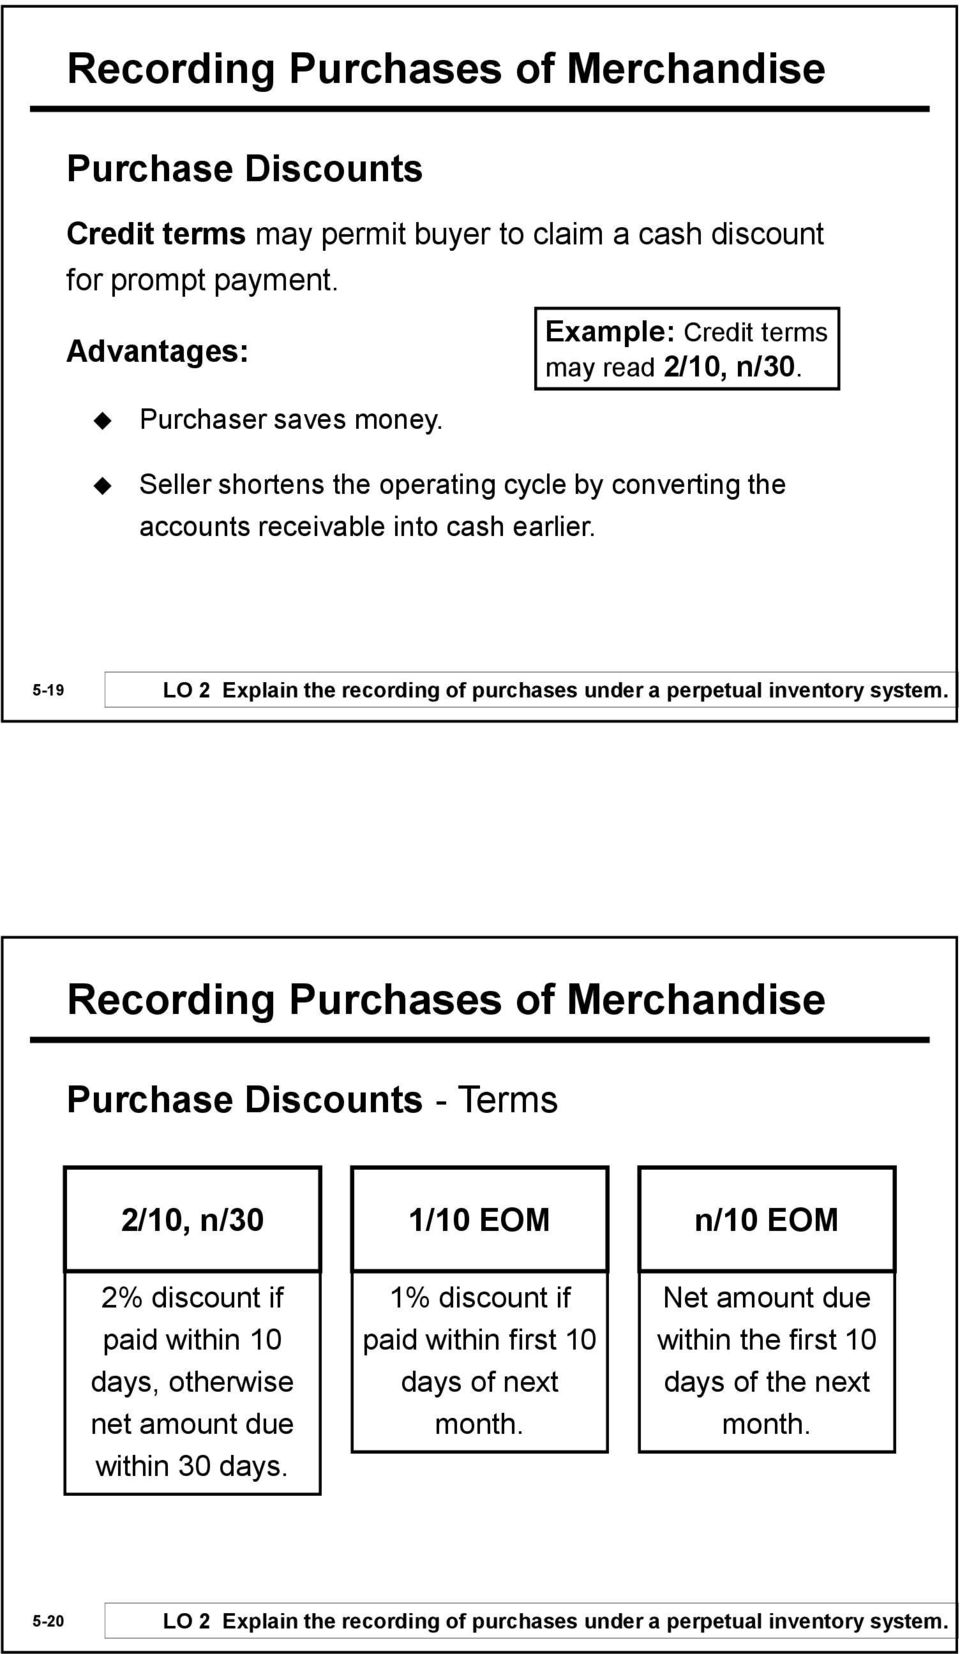 5-19 LO 2 Explain the recording of purchases under a perpetual inventory system.